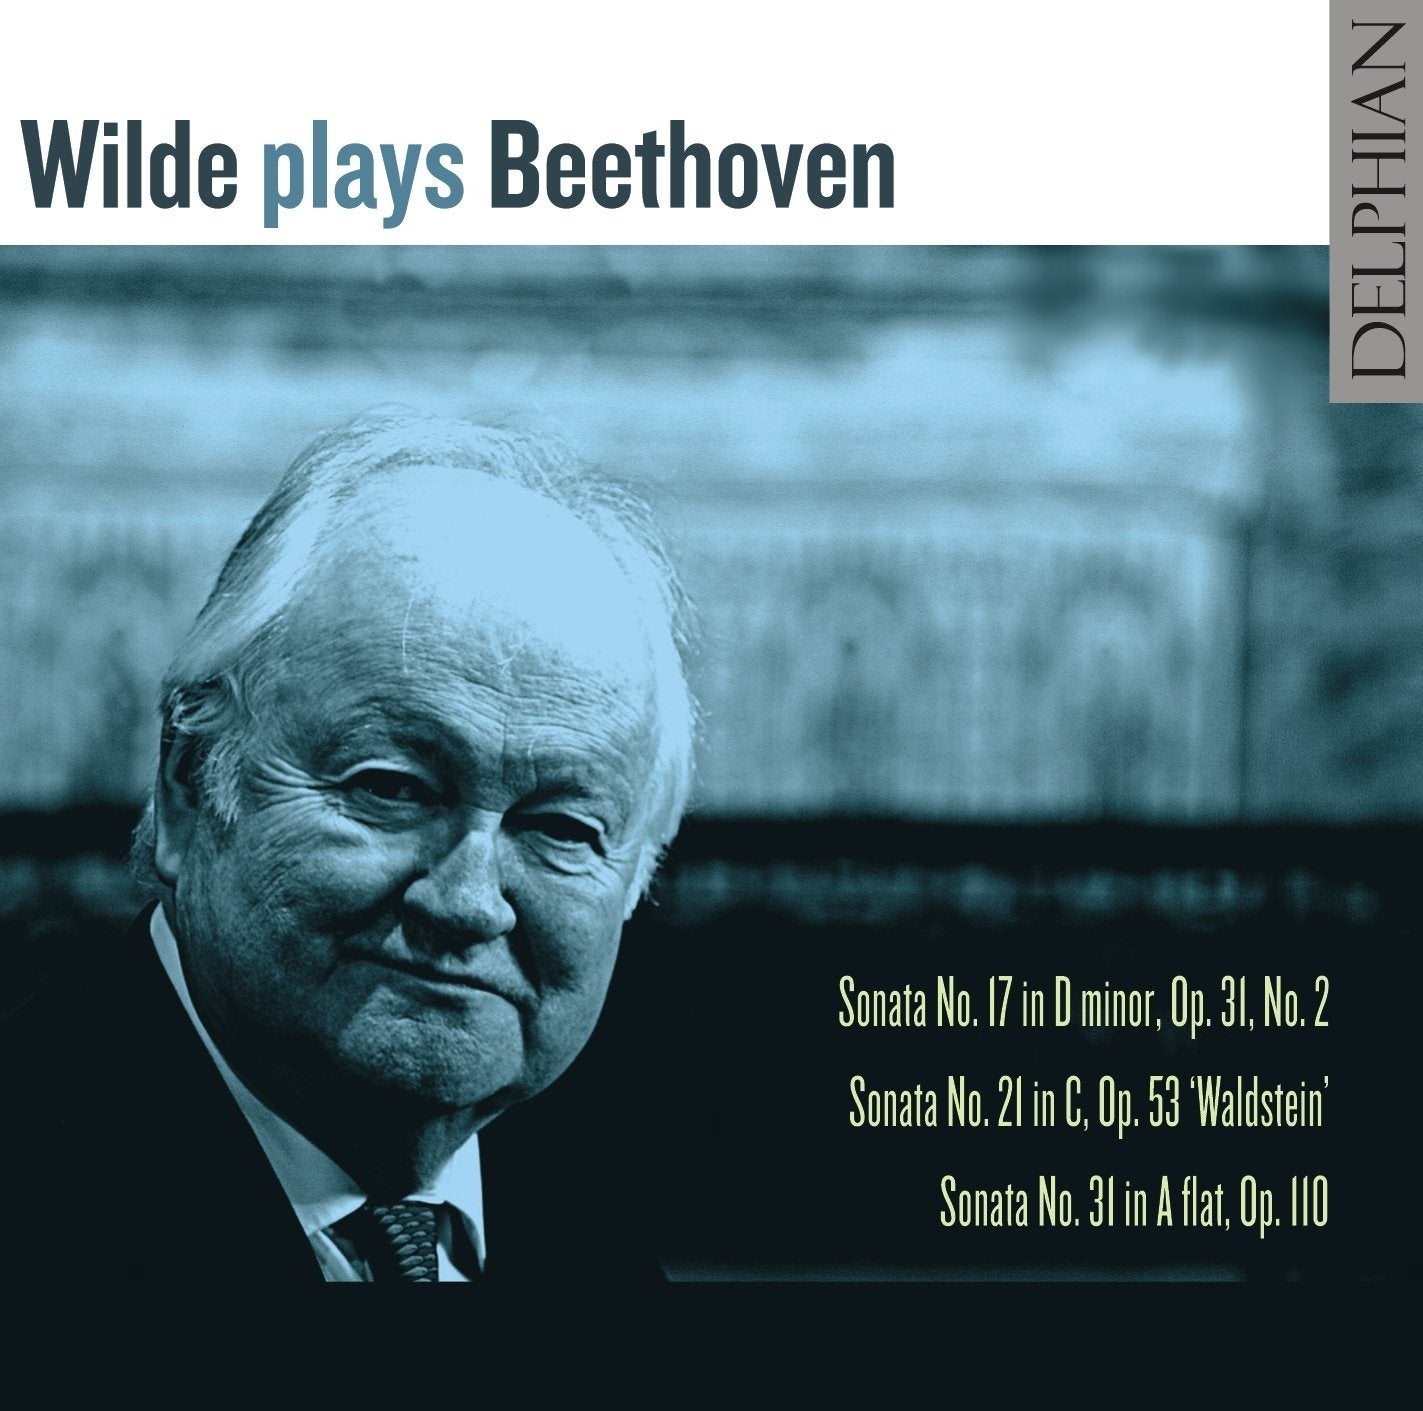 Wilde plays Beethoven CD Delphian Records